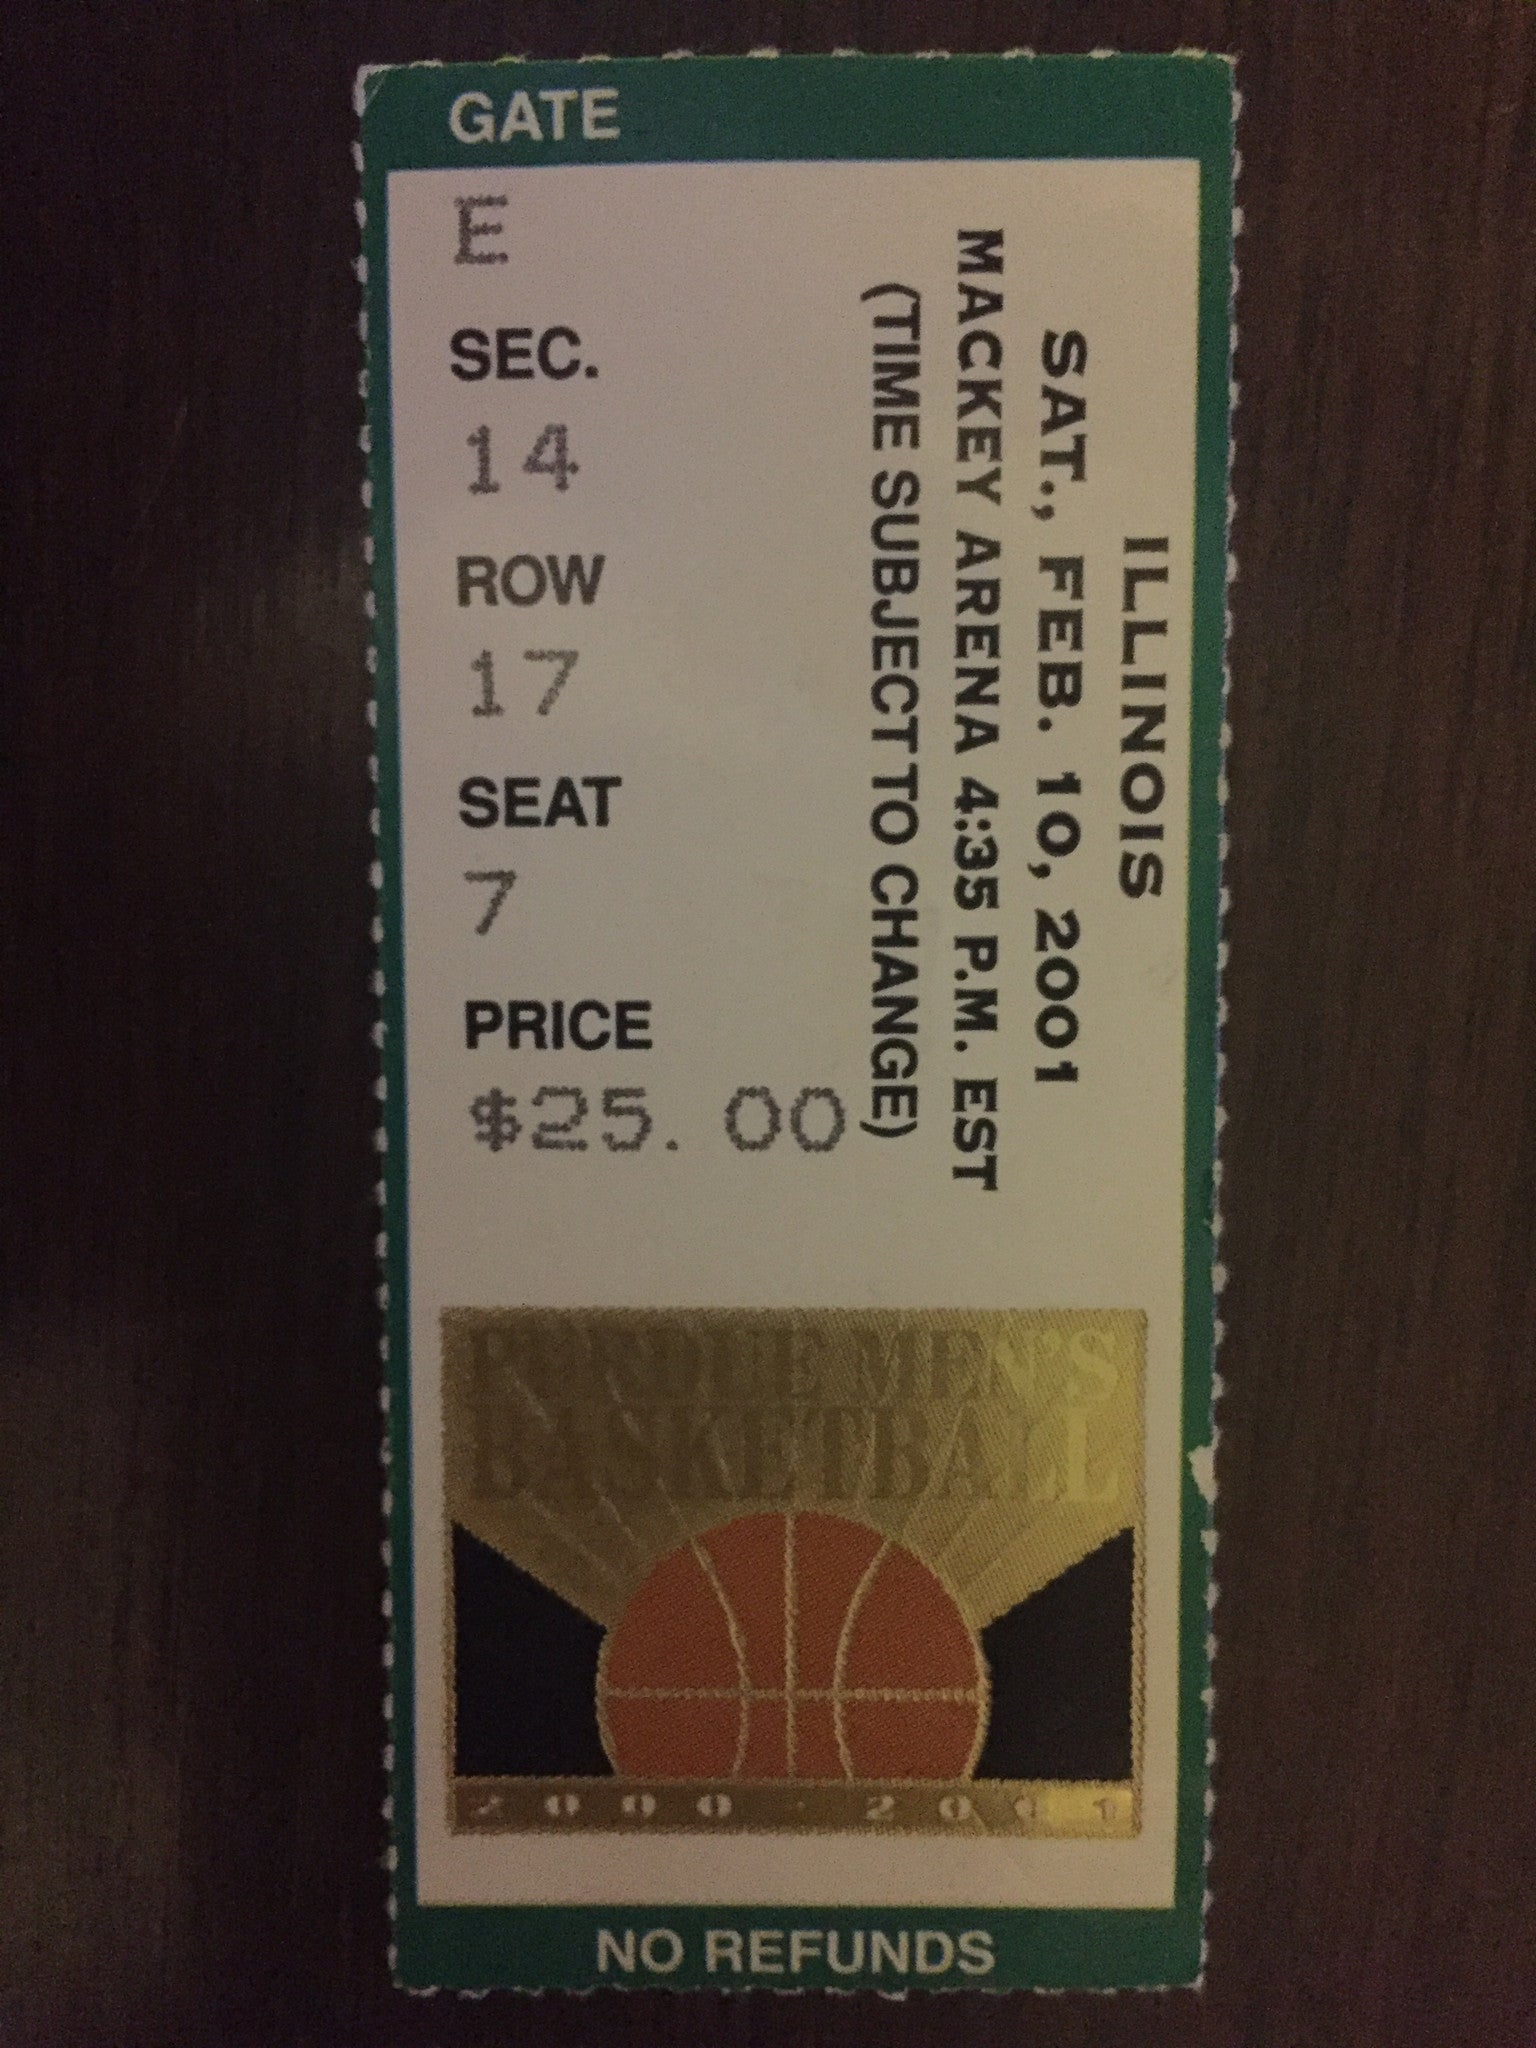 2001 Illinois vs Purdue Basketball Ticket Stub - Vintage Indy Sports